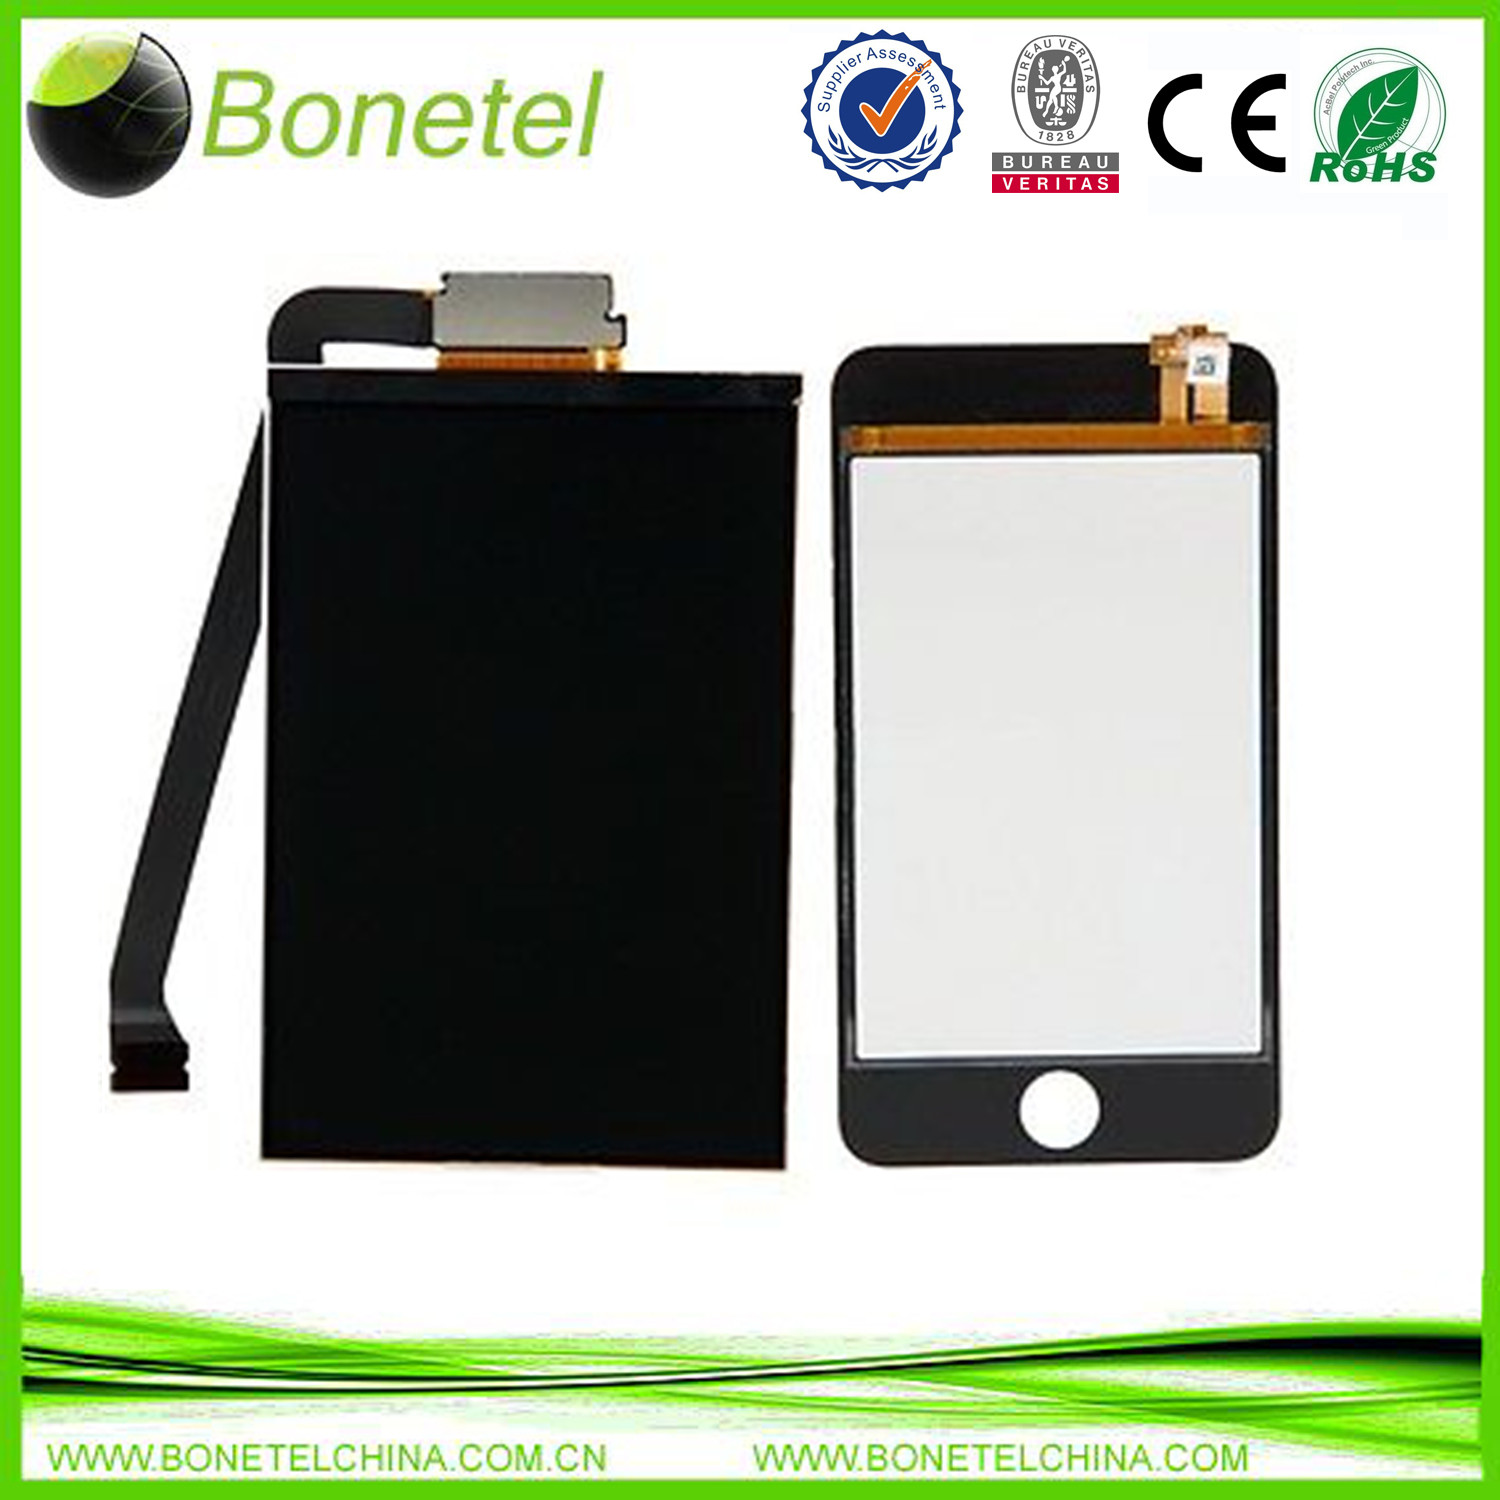 Replacement Display LCD Screen Digitizer Assembly for iPod Touch 1st Gen